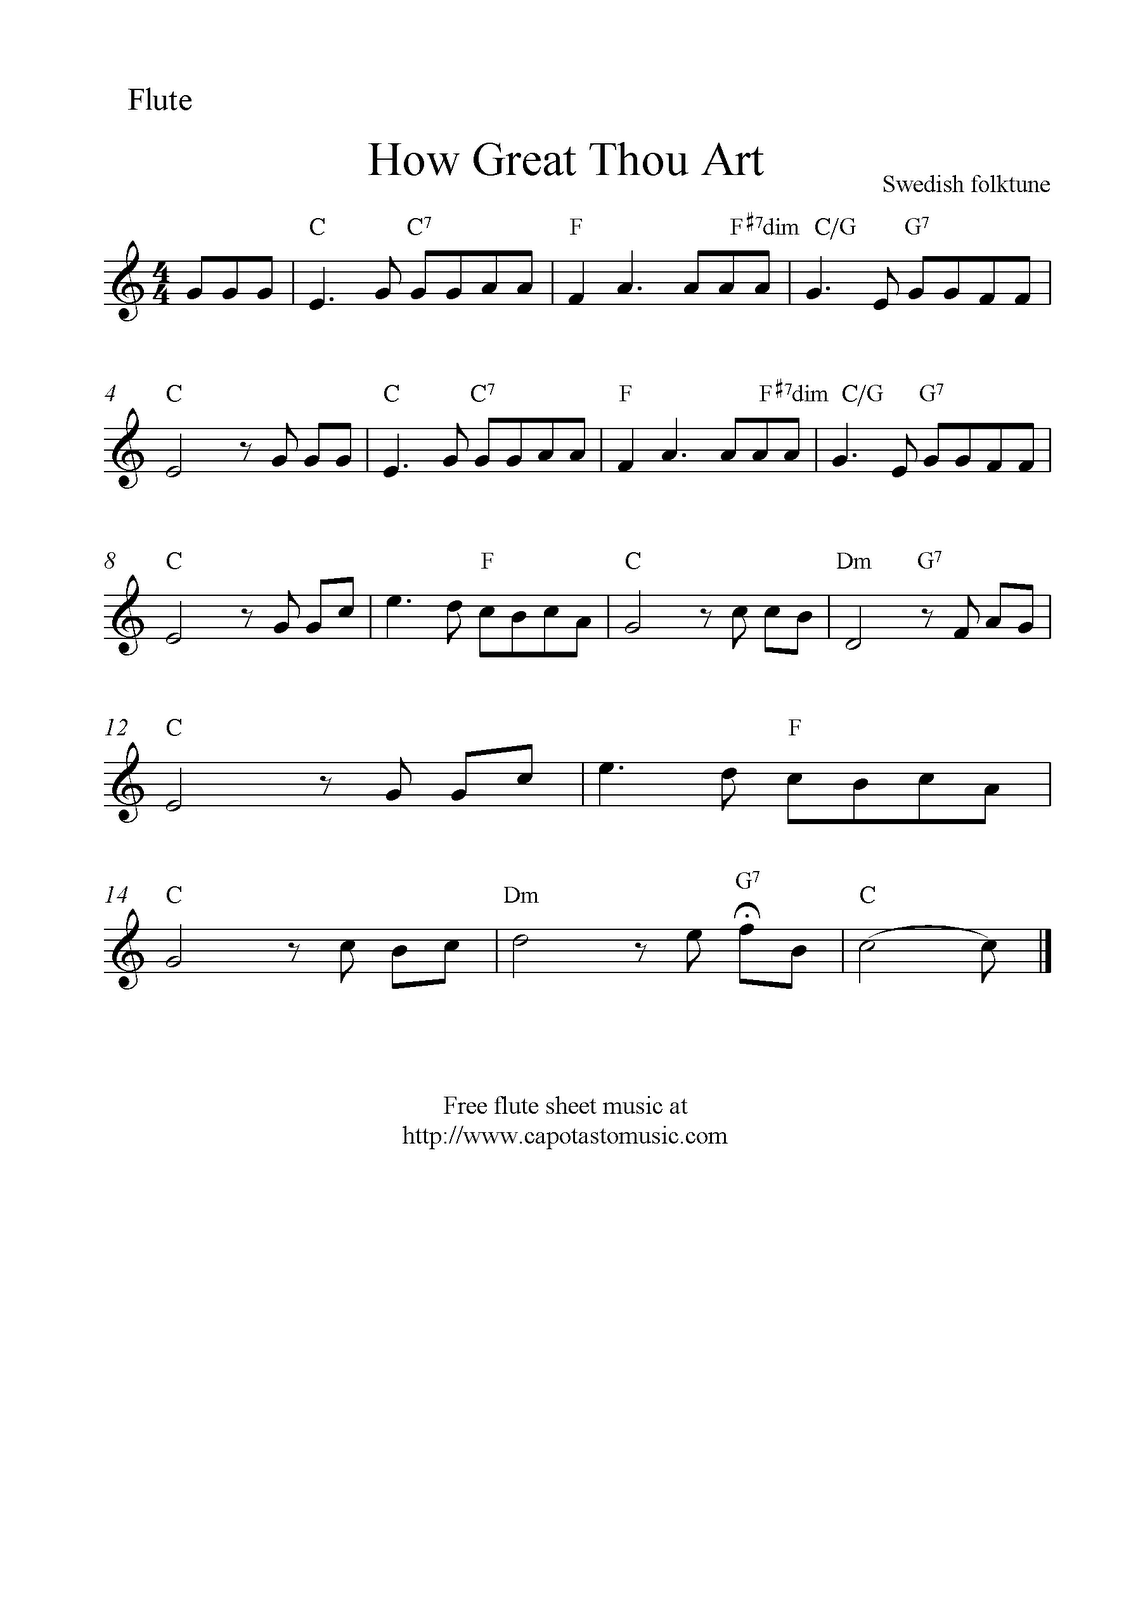 photo relating to Free Printable Flute Sheet Music named How Terrific Thou Artwork, absolutely free Christian flute sheet tunes notes